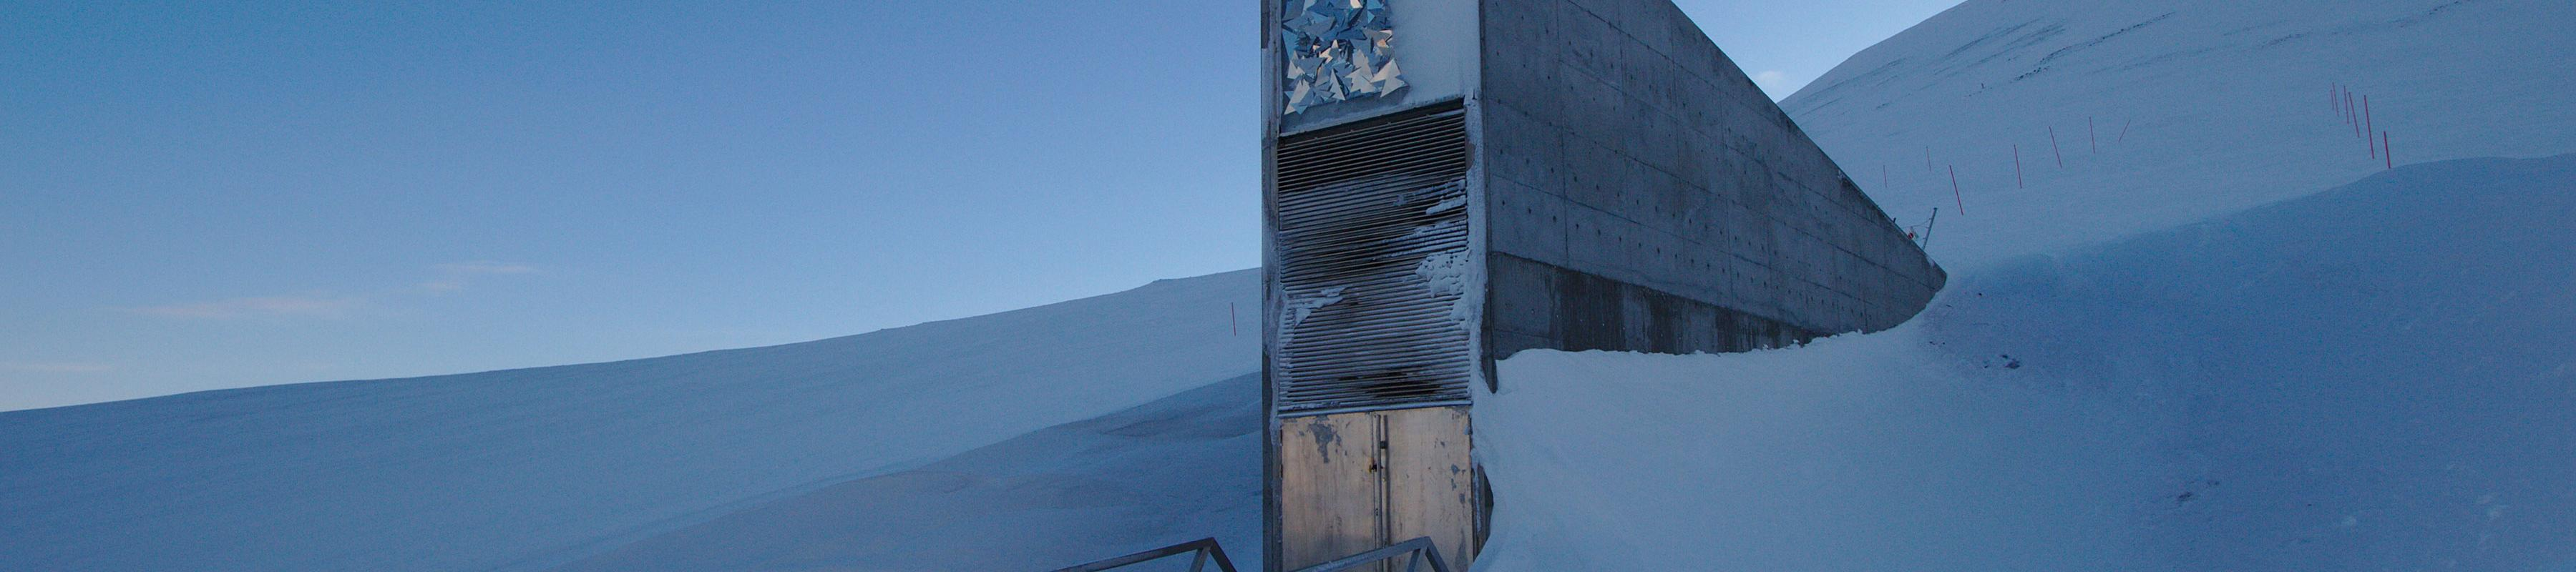 The futuristic-looking entrance to the Svalbard seed vault surrounded by snow